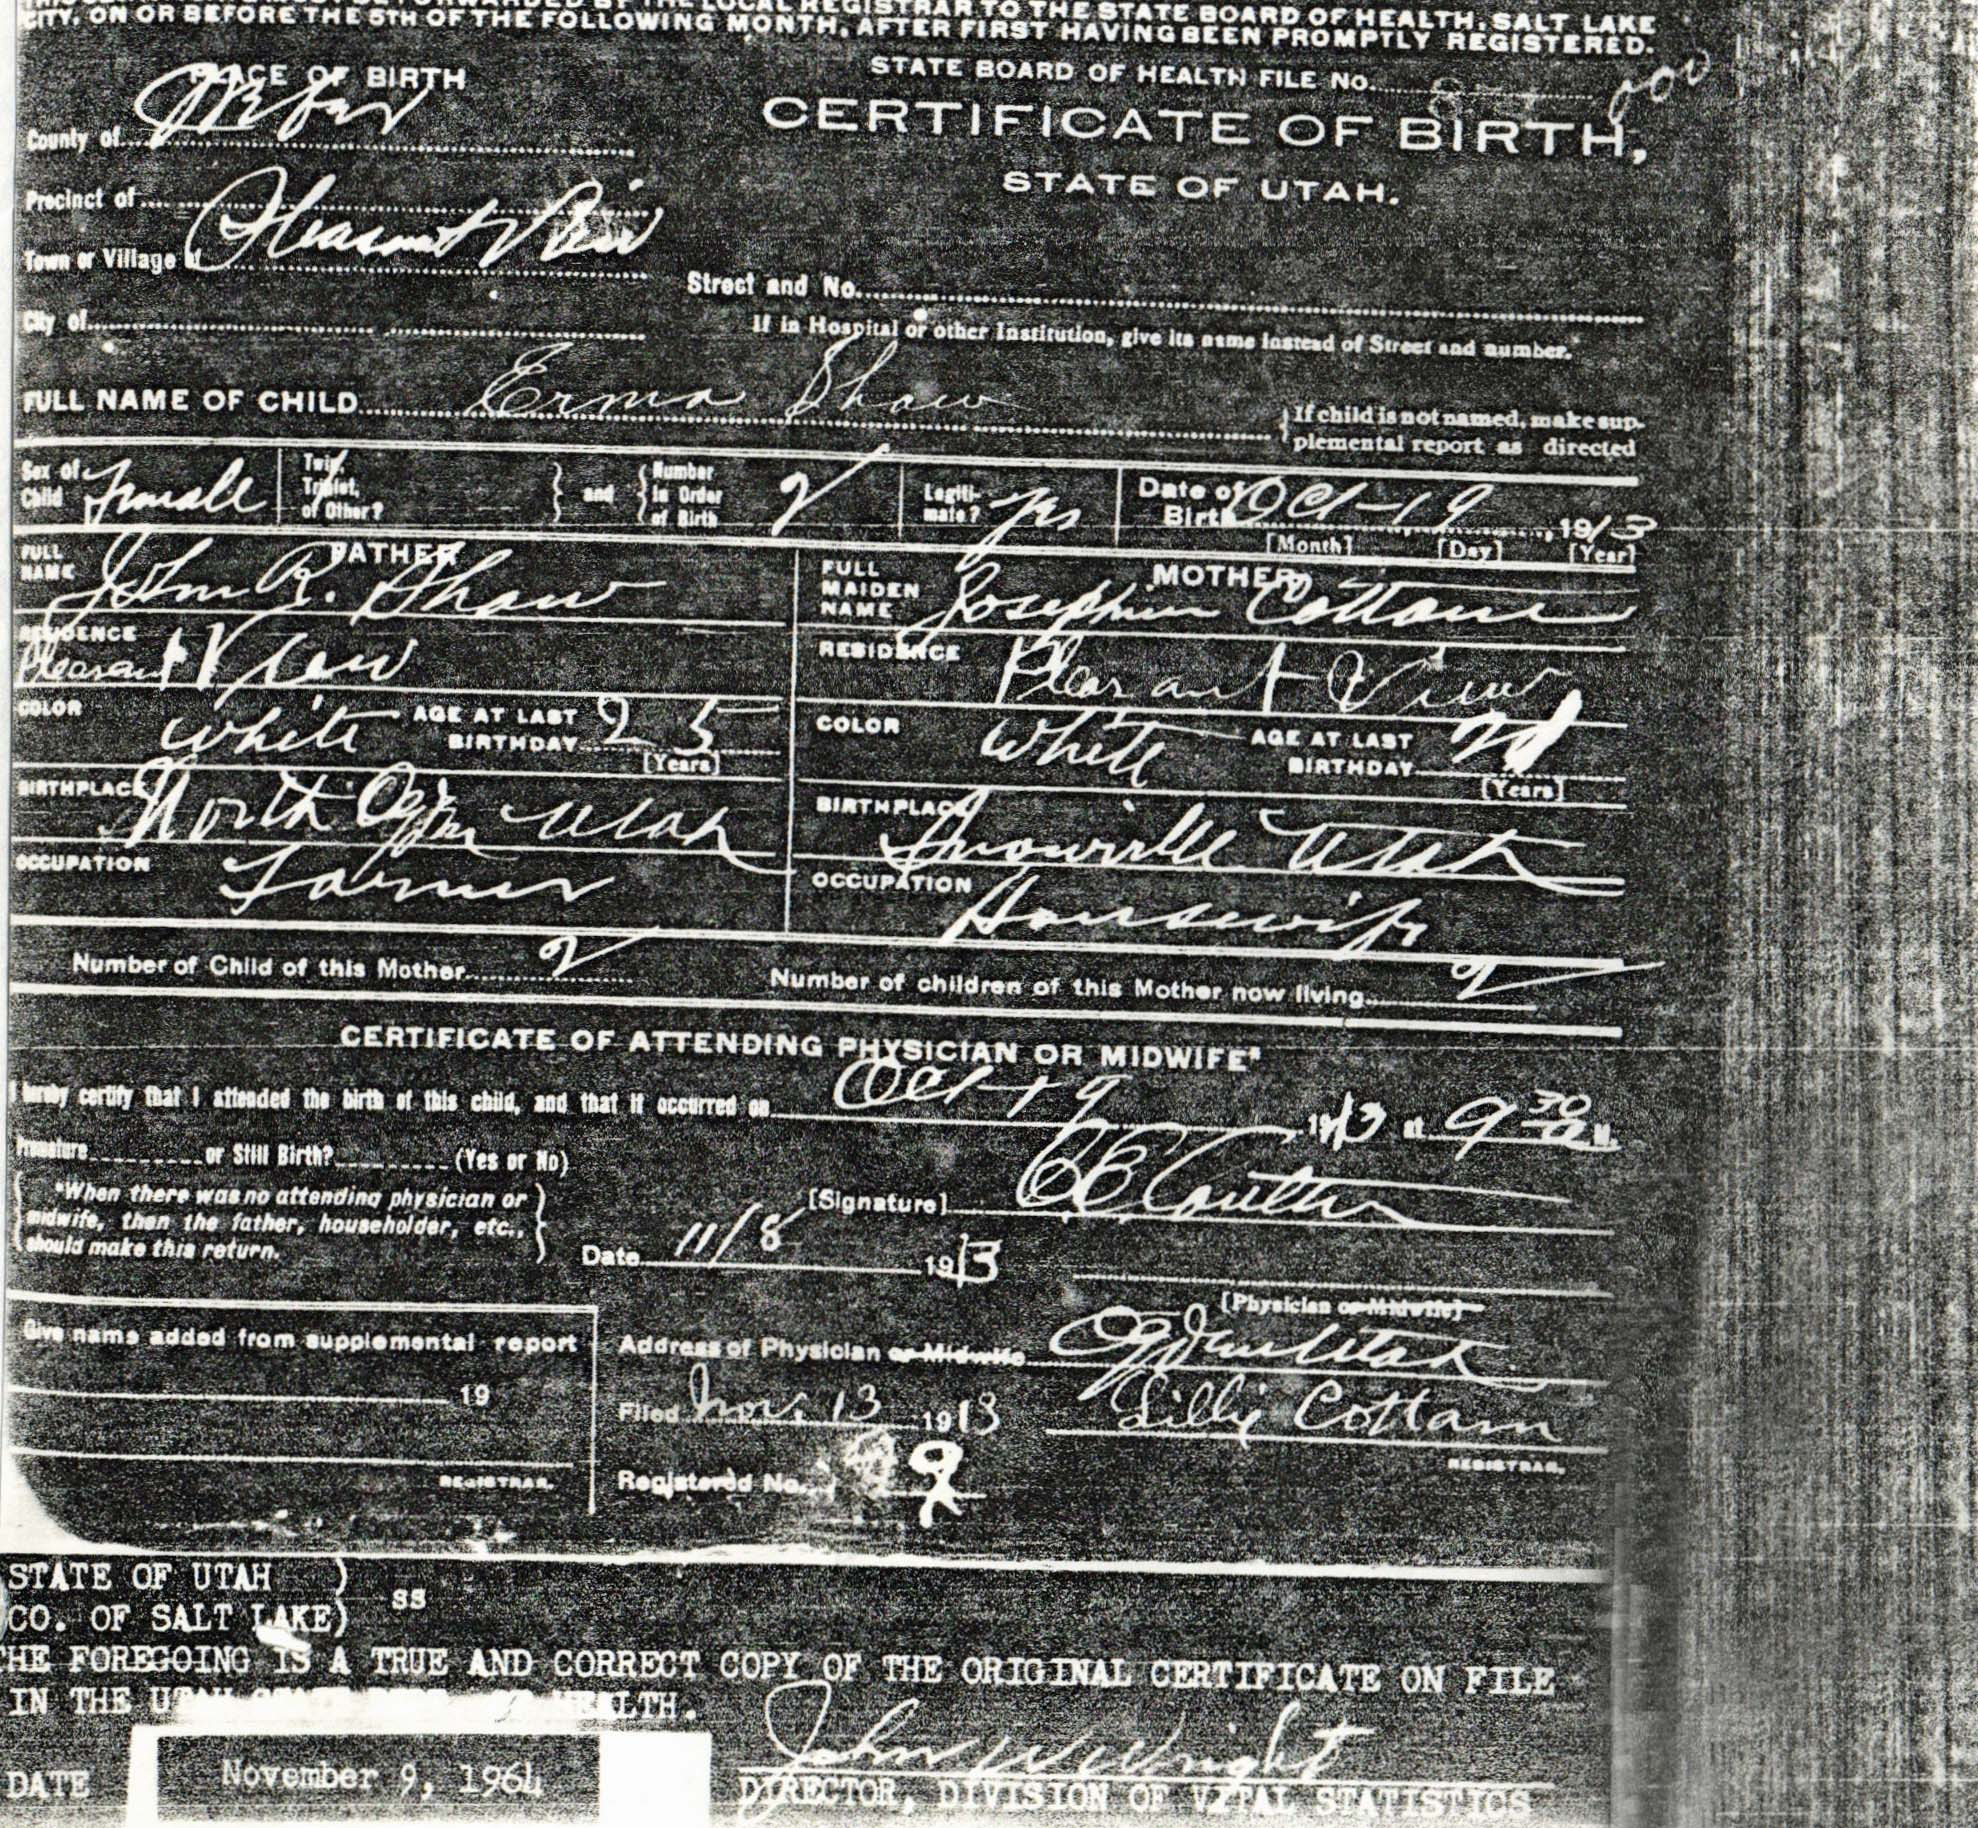 Documents Birth Certificate For Erma Shaw Staples 1913 My Family